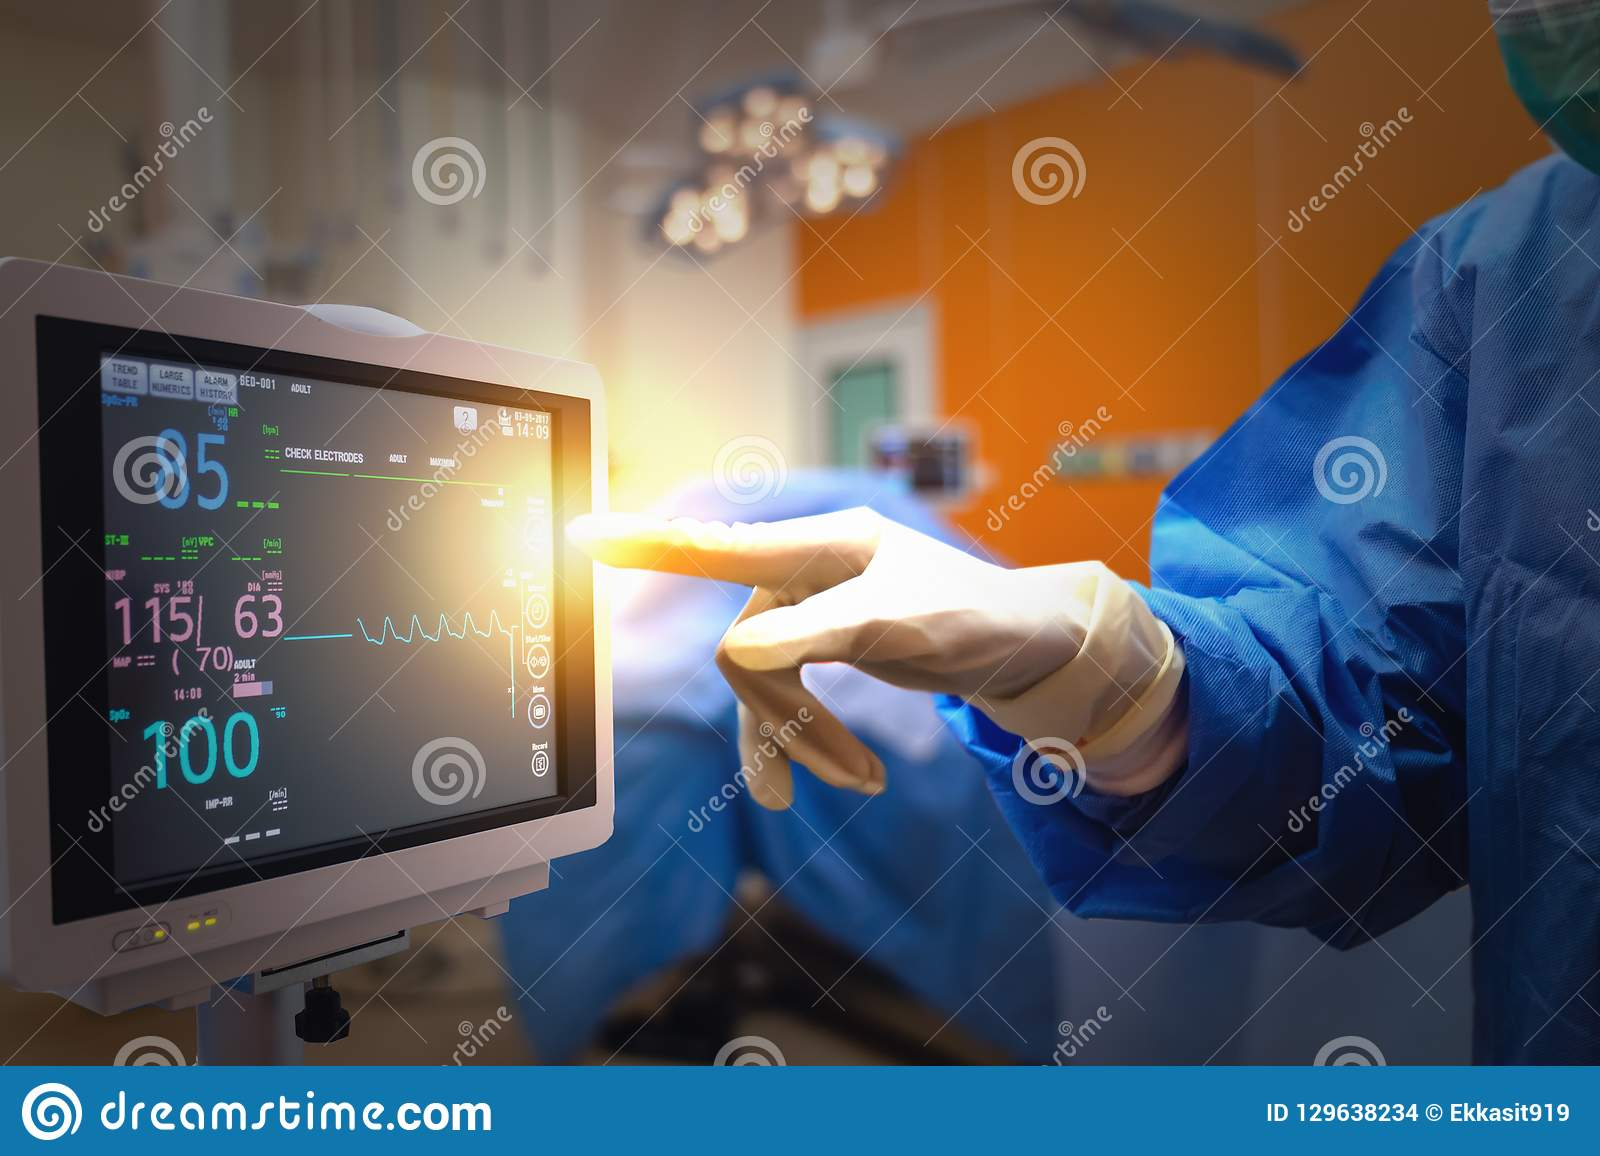 Smart medical technology in hospital concept, doctor in Surgeons team field holding medical instruments for surgery the patient in